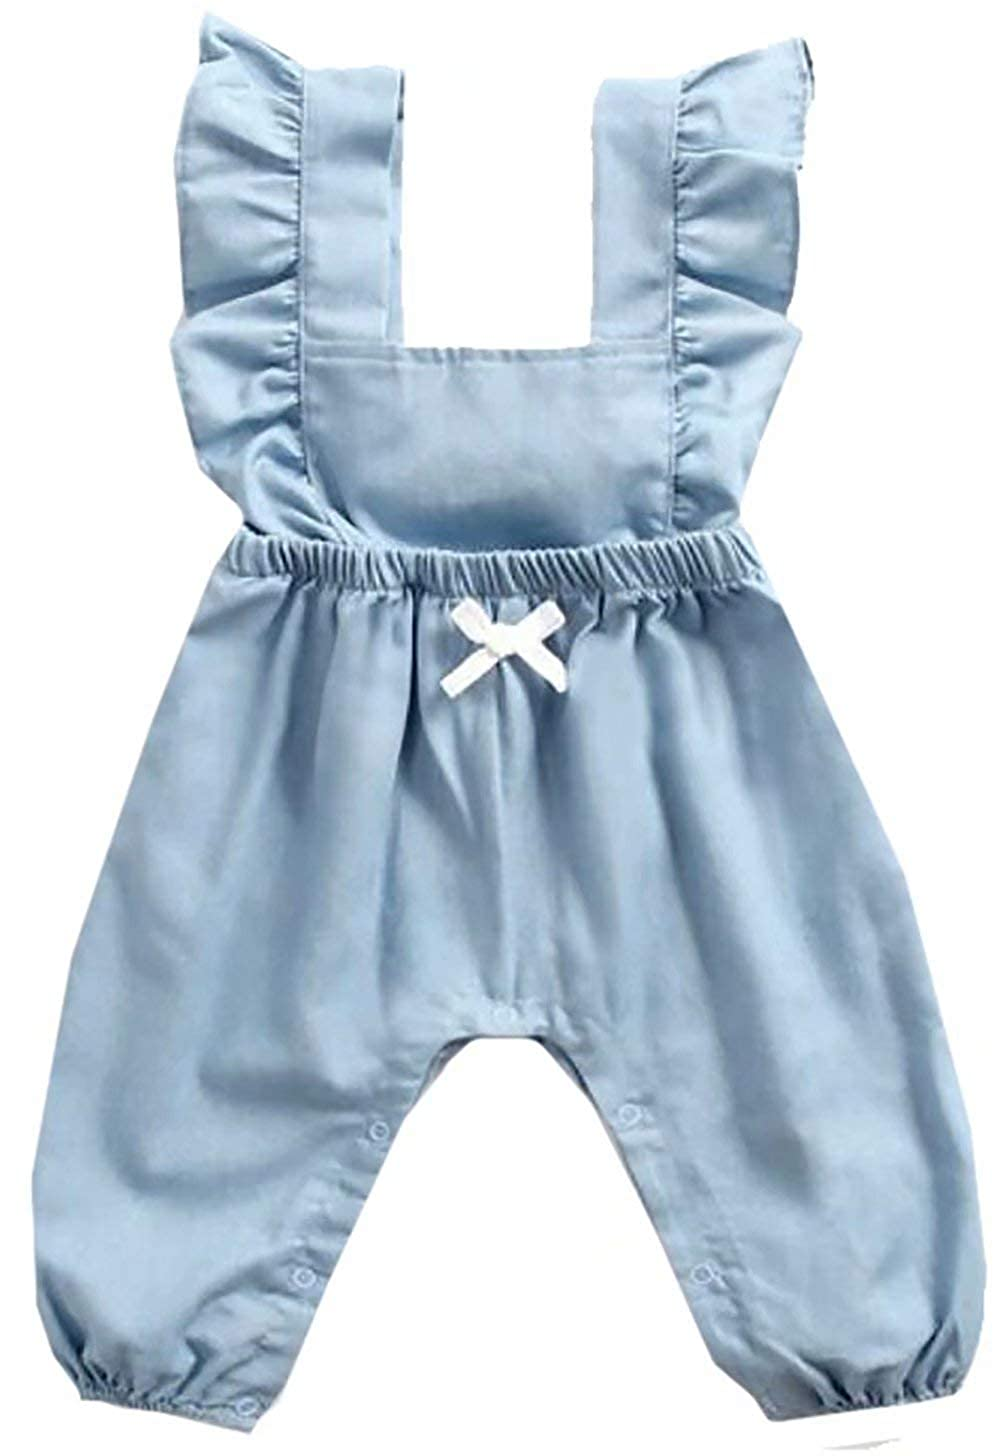 KIDDAD Toddler Baby Girls One Piece Short Sleeve Ripped Demin Bowknot Jeans Ruffle Romper Sunsuit Outfits Jumpsuit